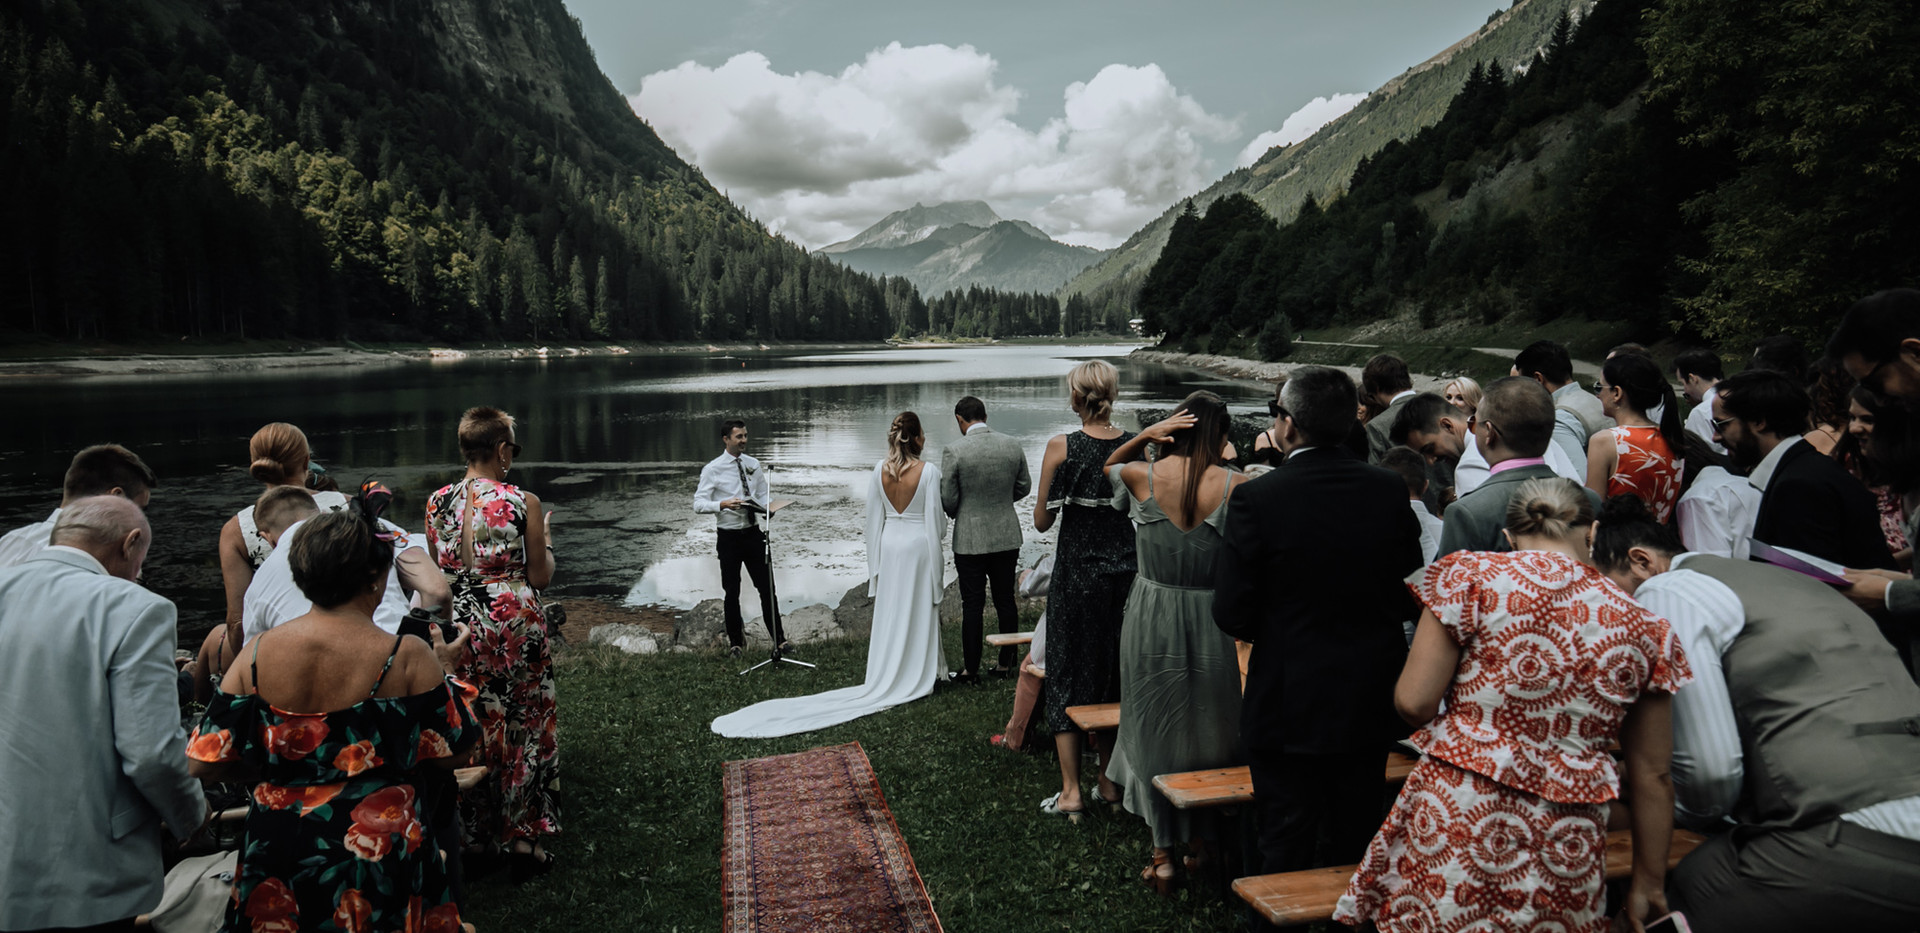 Wedding Ceremony at Lac Montriond